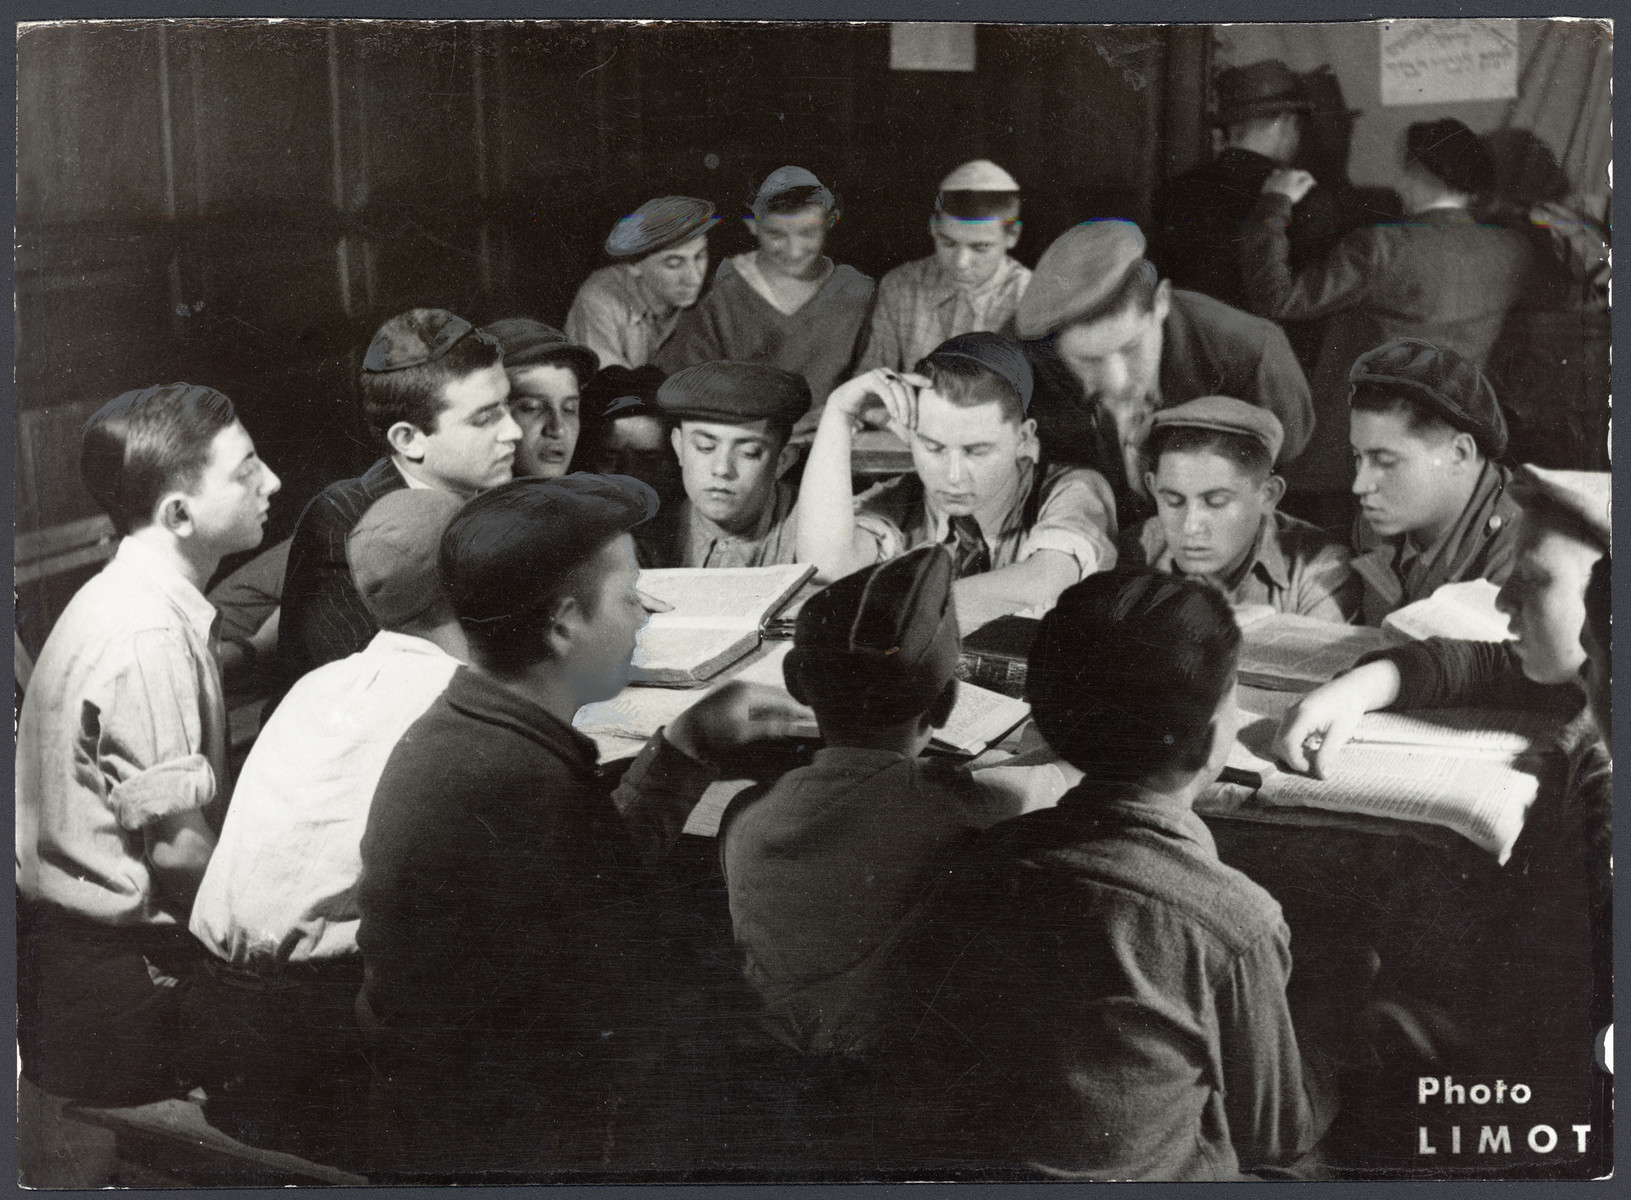 Orthodox teenagers study religious texts in an OSE postwar children's home in France [probably Taverny].